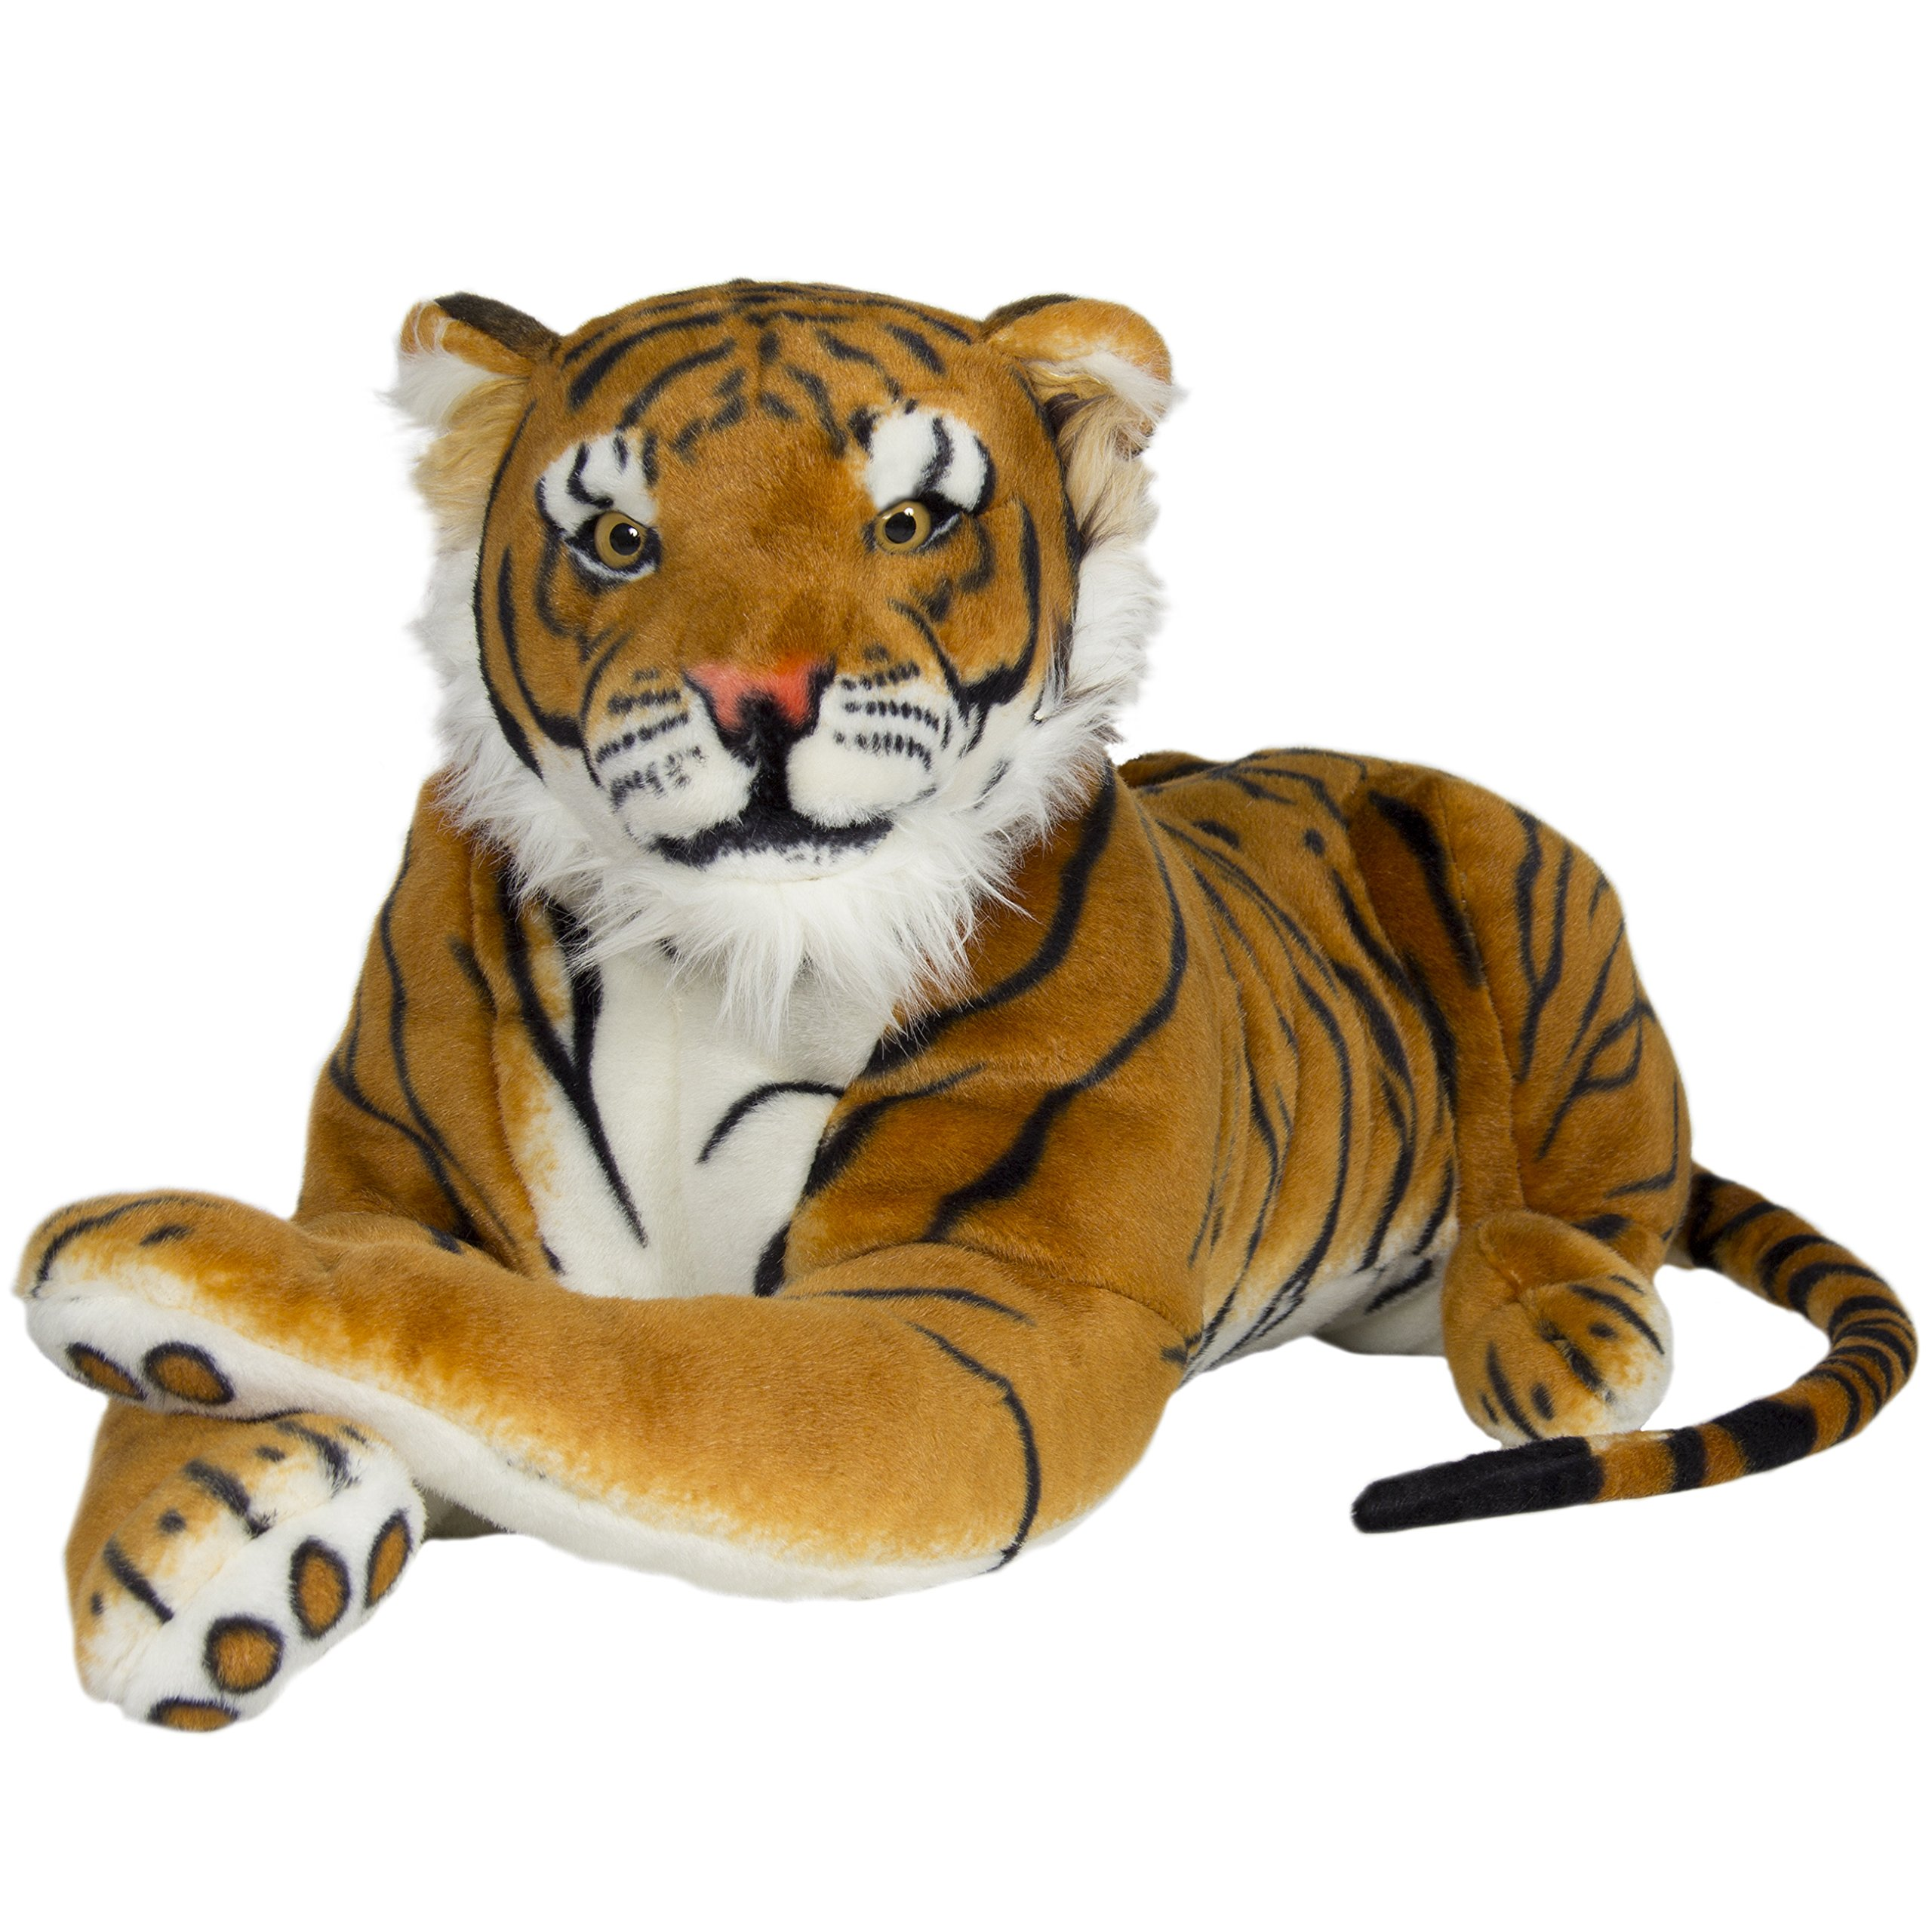 713bb103b5a7 Best Choice Products Tiger Plush Animal Realistic Big Cat Orange Bengal  Soft Stuffed Toy Pillow,